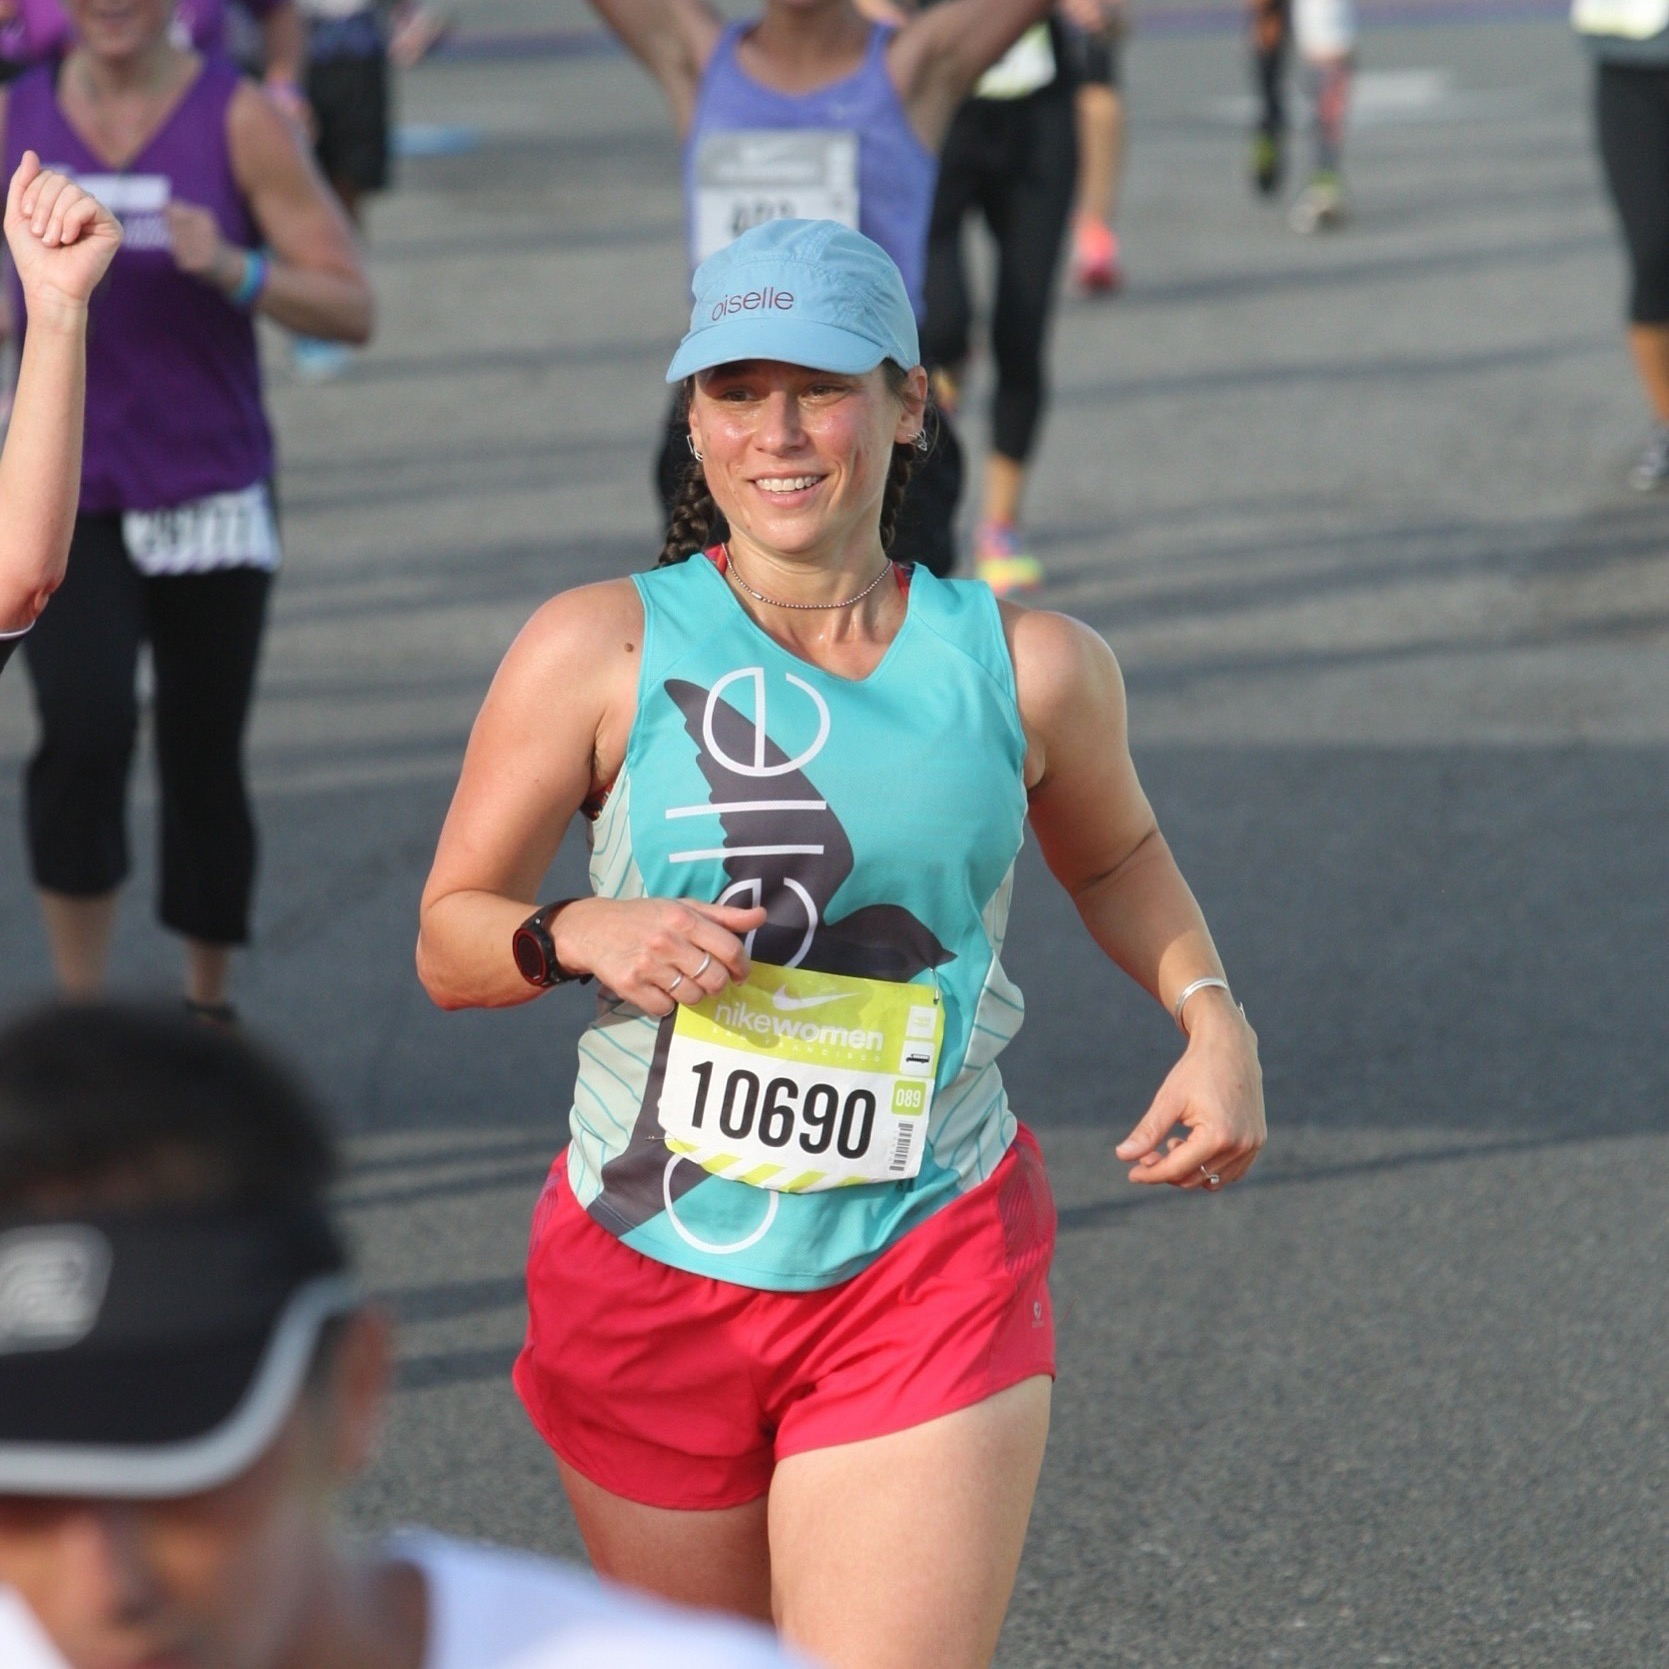 0181bdf2b8ea The only decent race photo of me in existence.